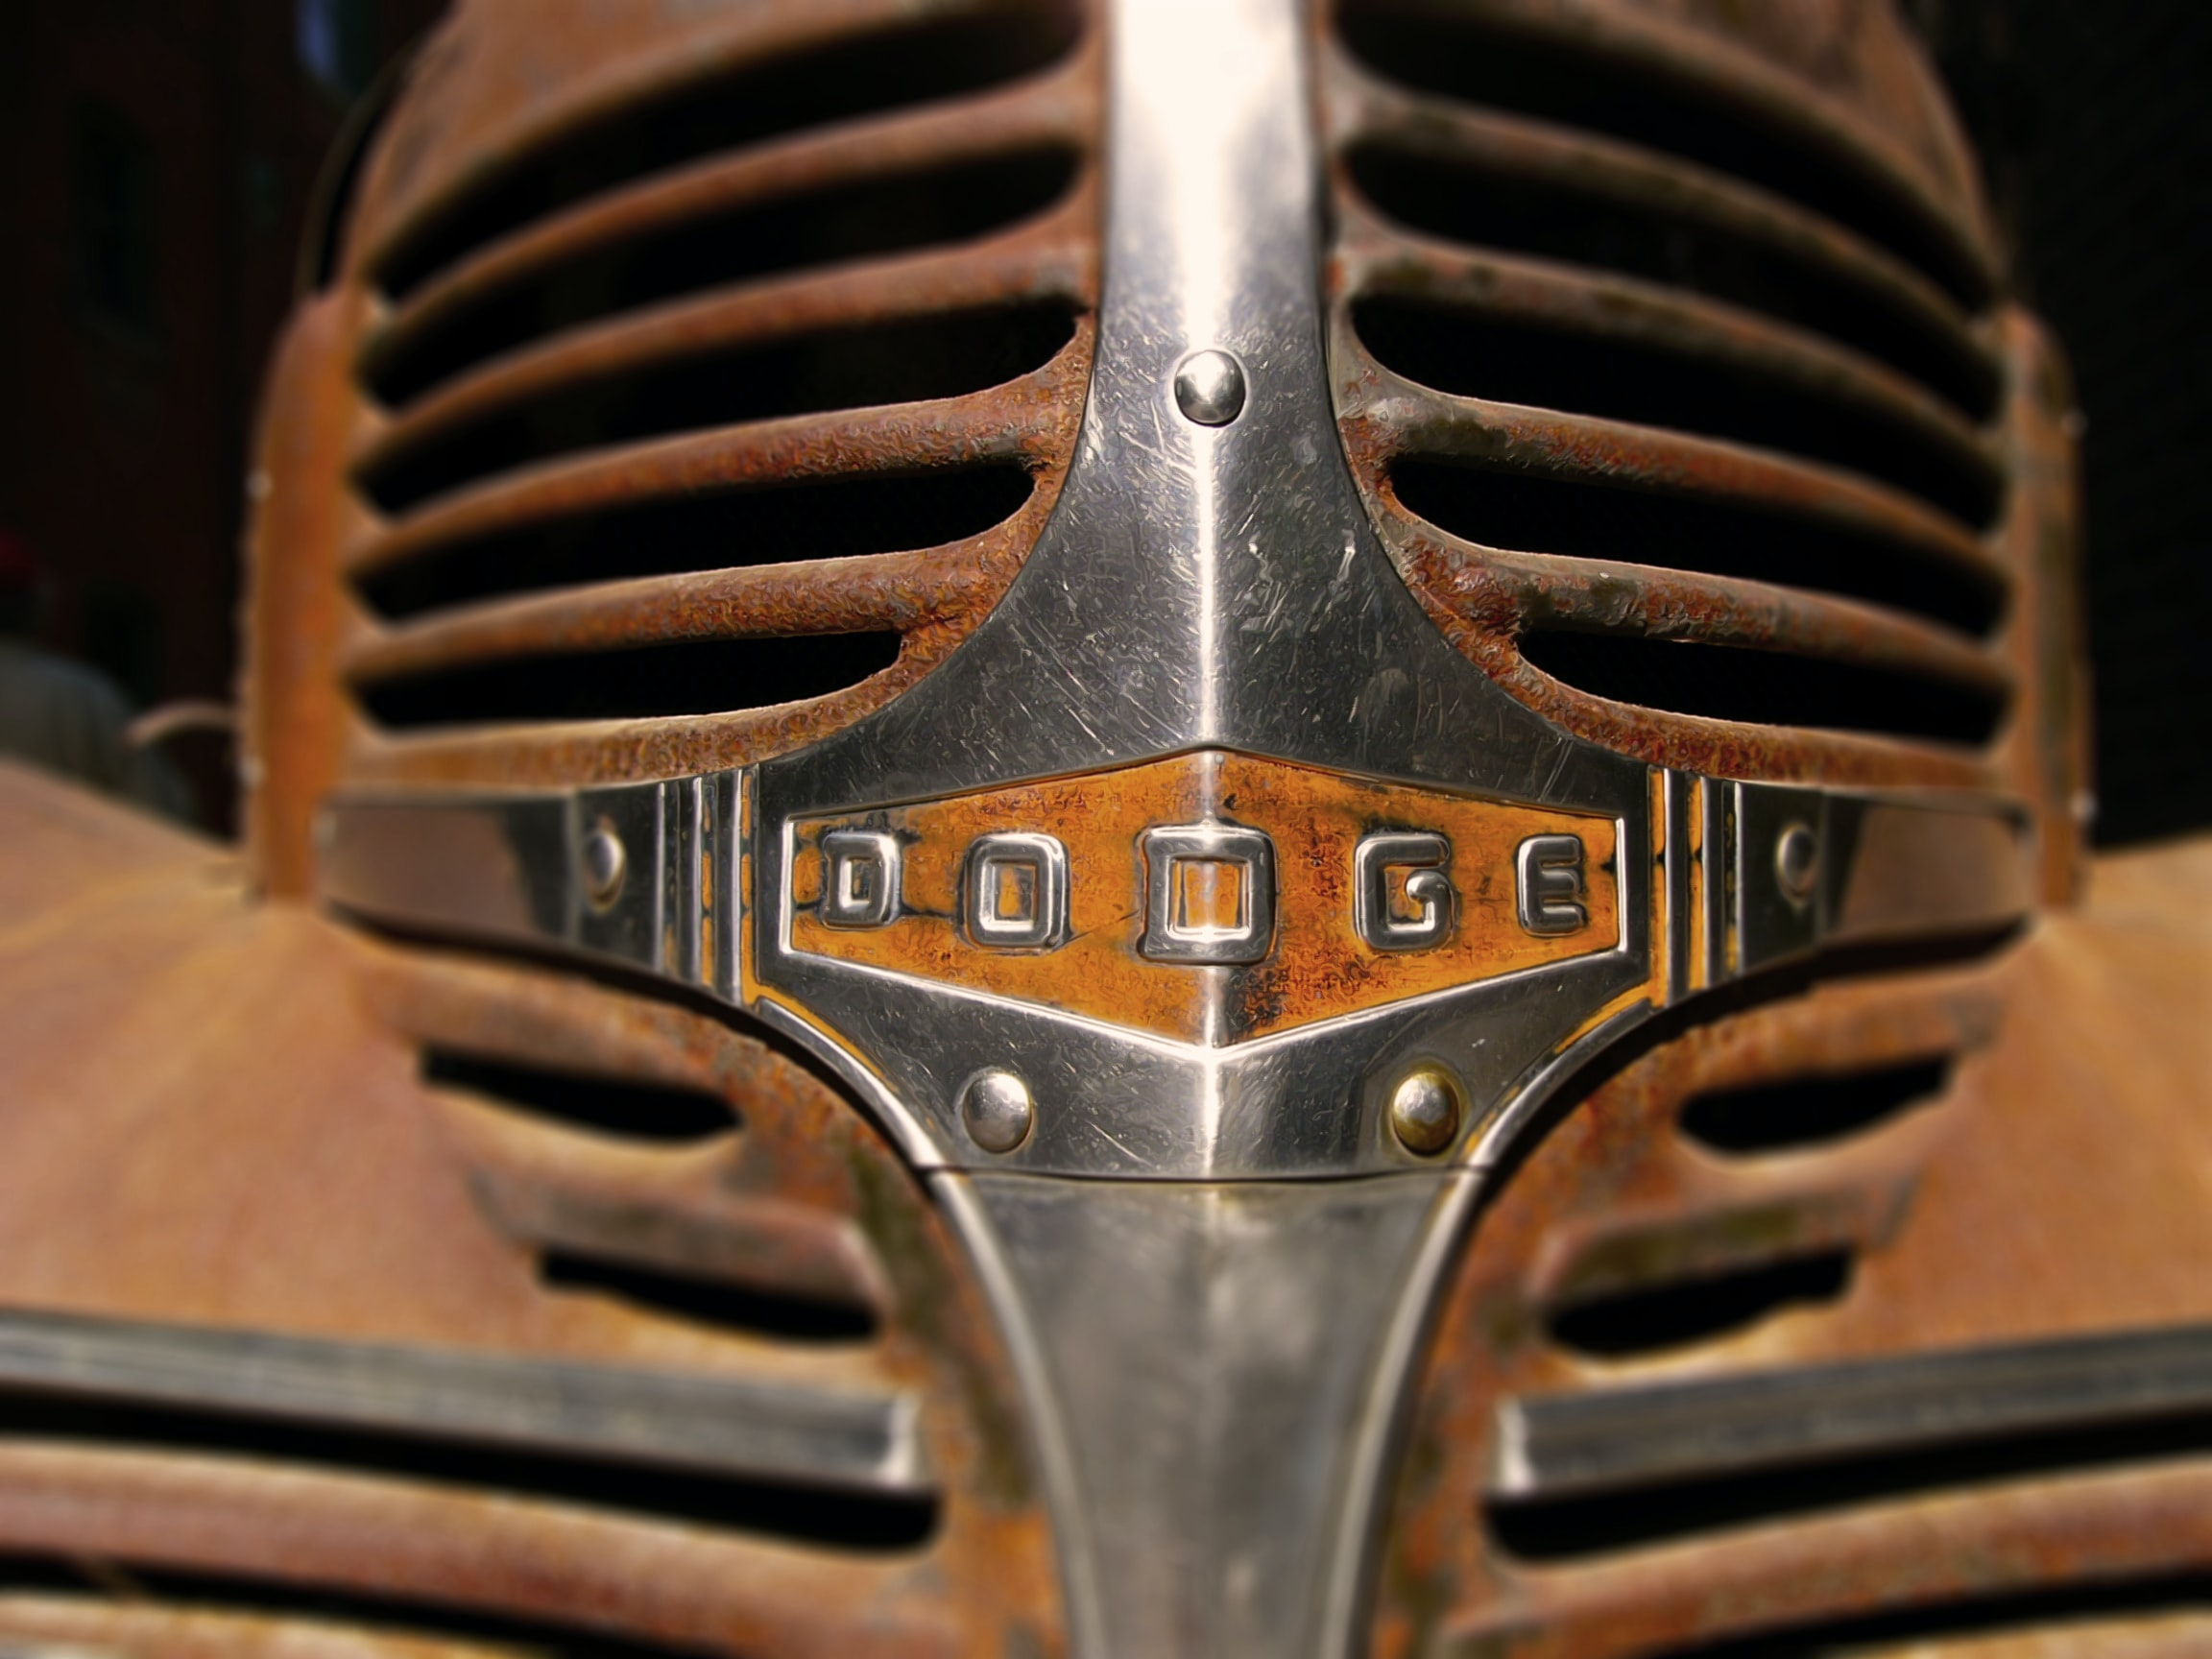 Rusty chrome grille of old dodge car.